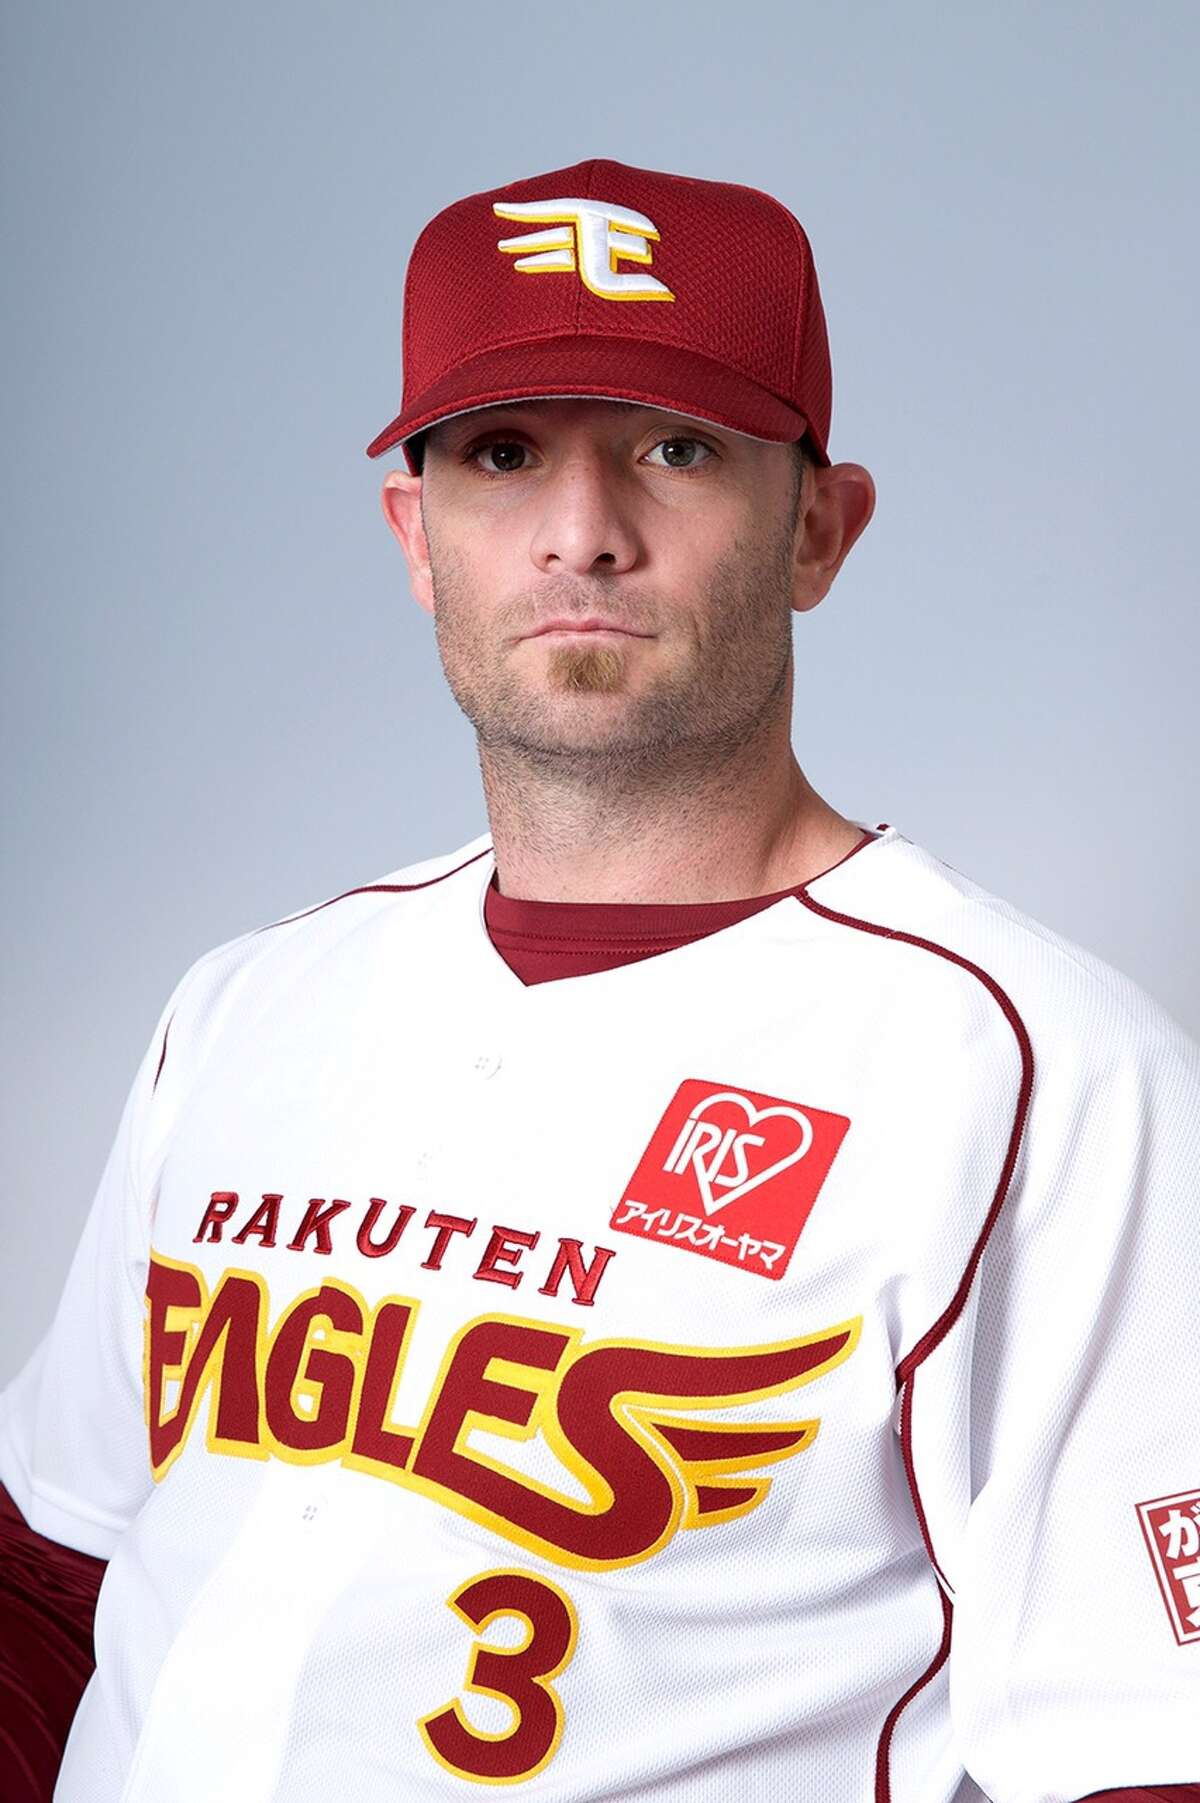 Jonny Gomes posing on his first day of spring training with the Rakuten Golden Eagles in Japan. February 23, 2016.